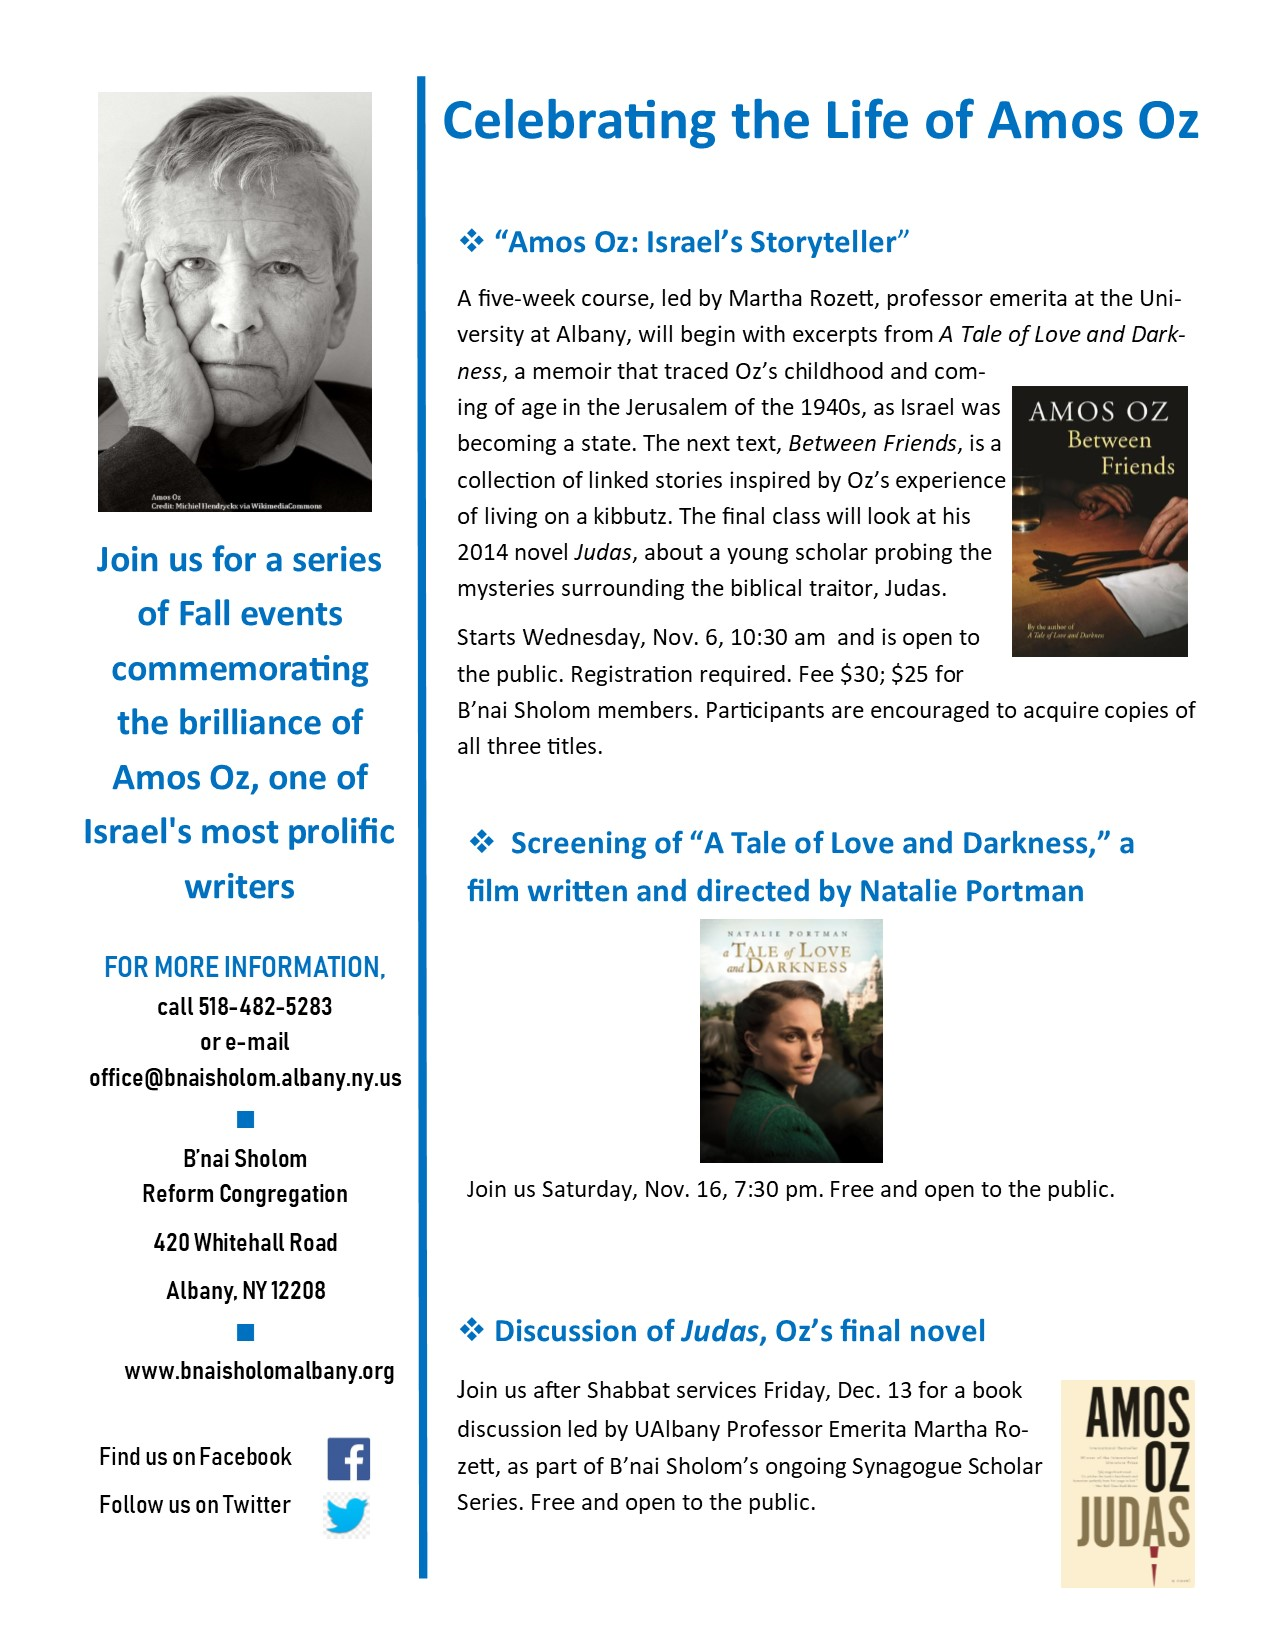 Amos Oz - Course, Movie, and Discussion